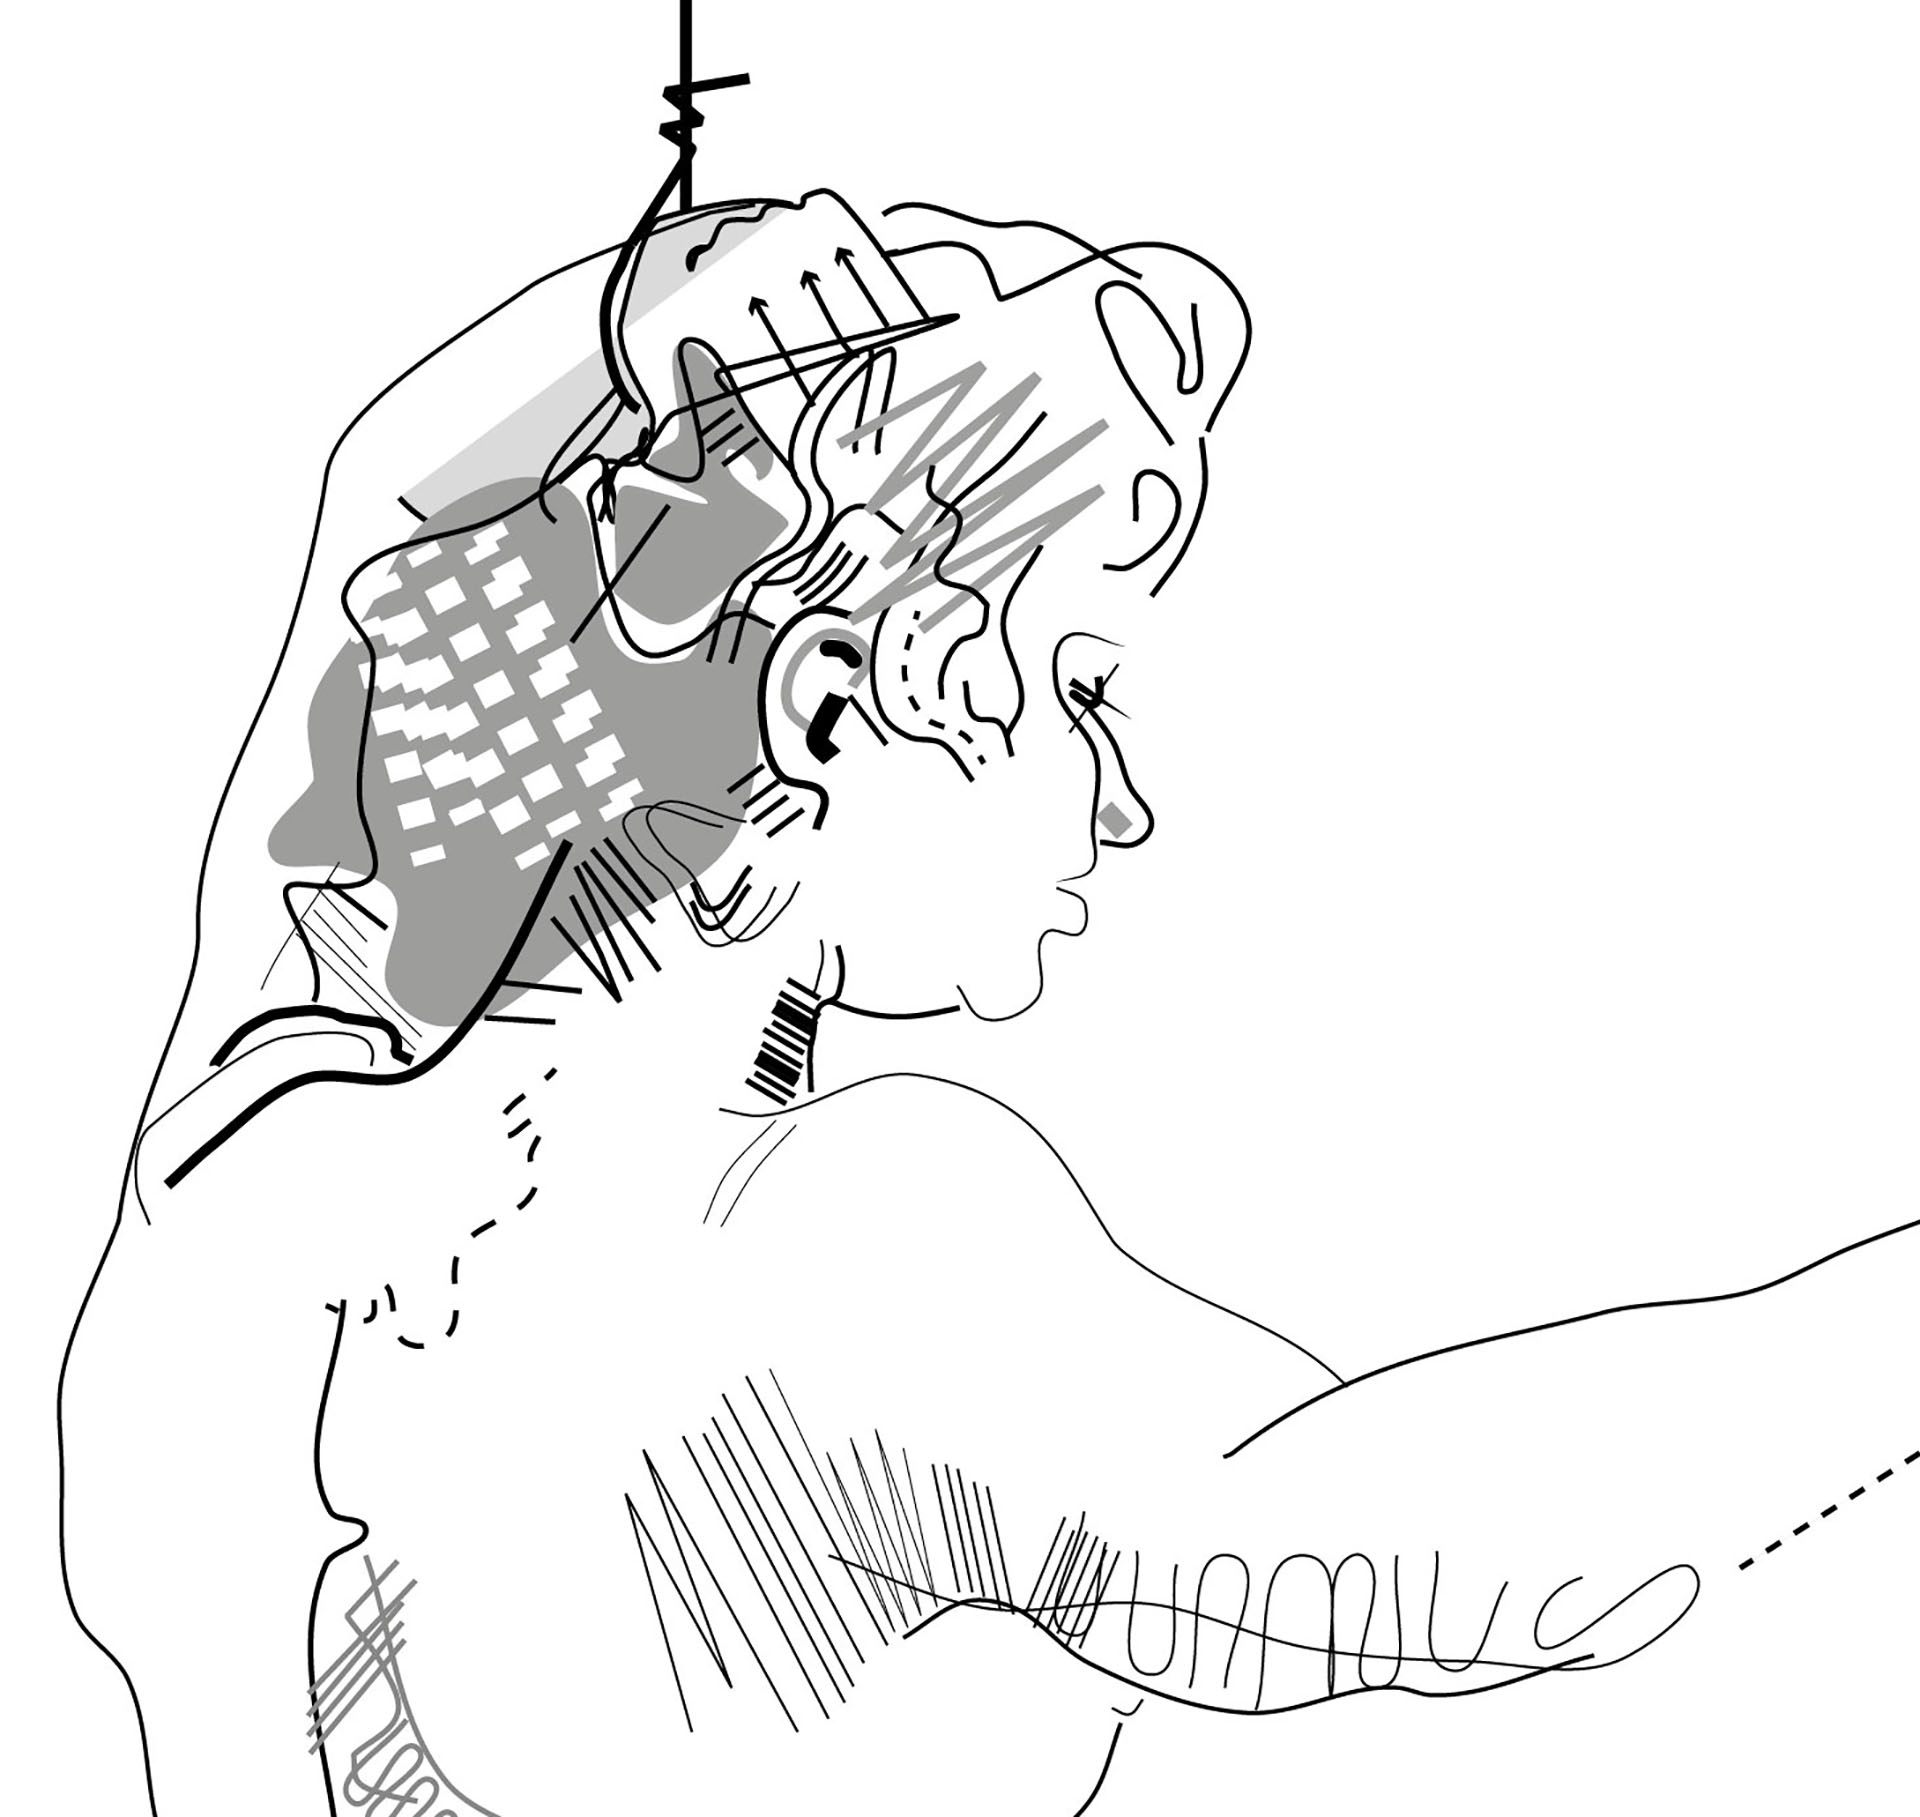 victorcontemlatesEve2, Detail of digital vector drawing used for the Frankenstein's Toile.